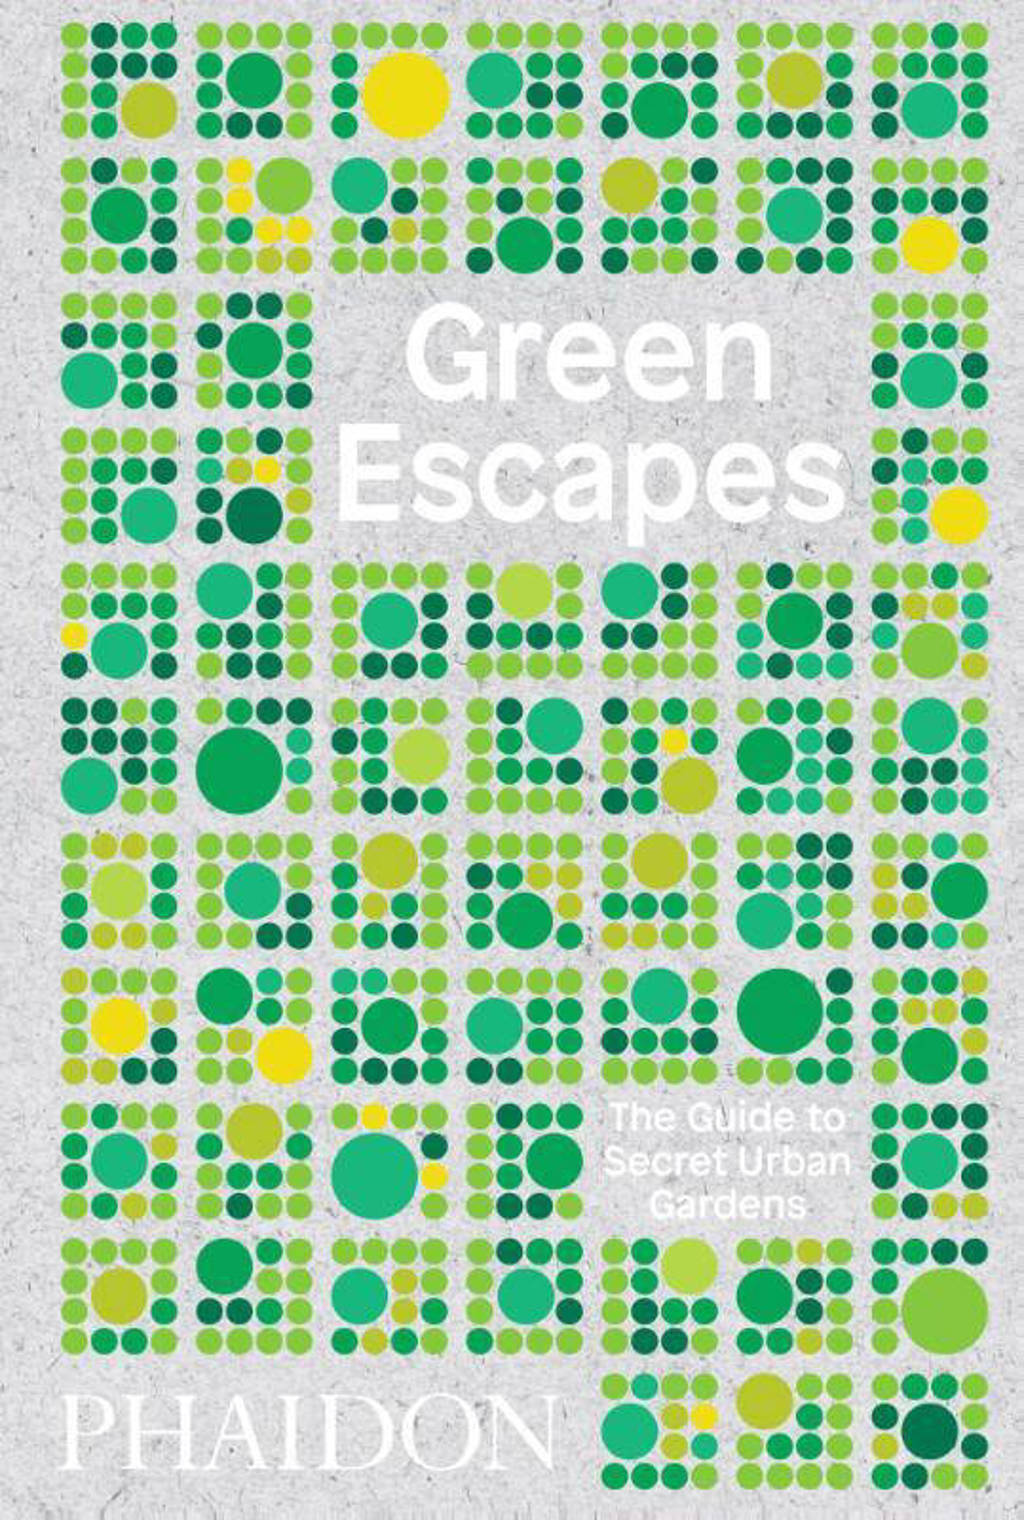 Green Escapes - Musgrave, Toby